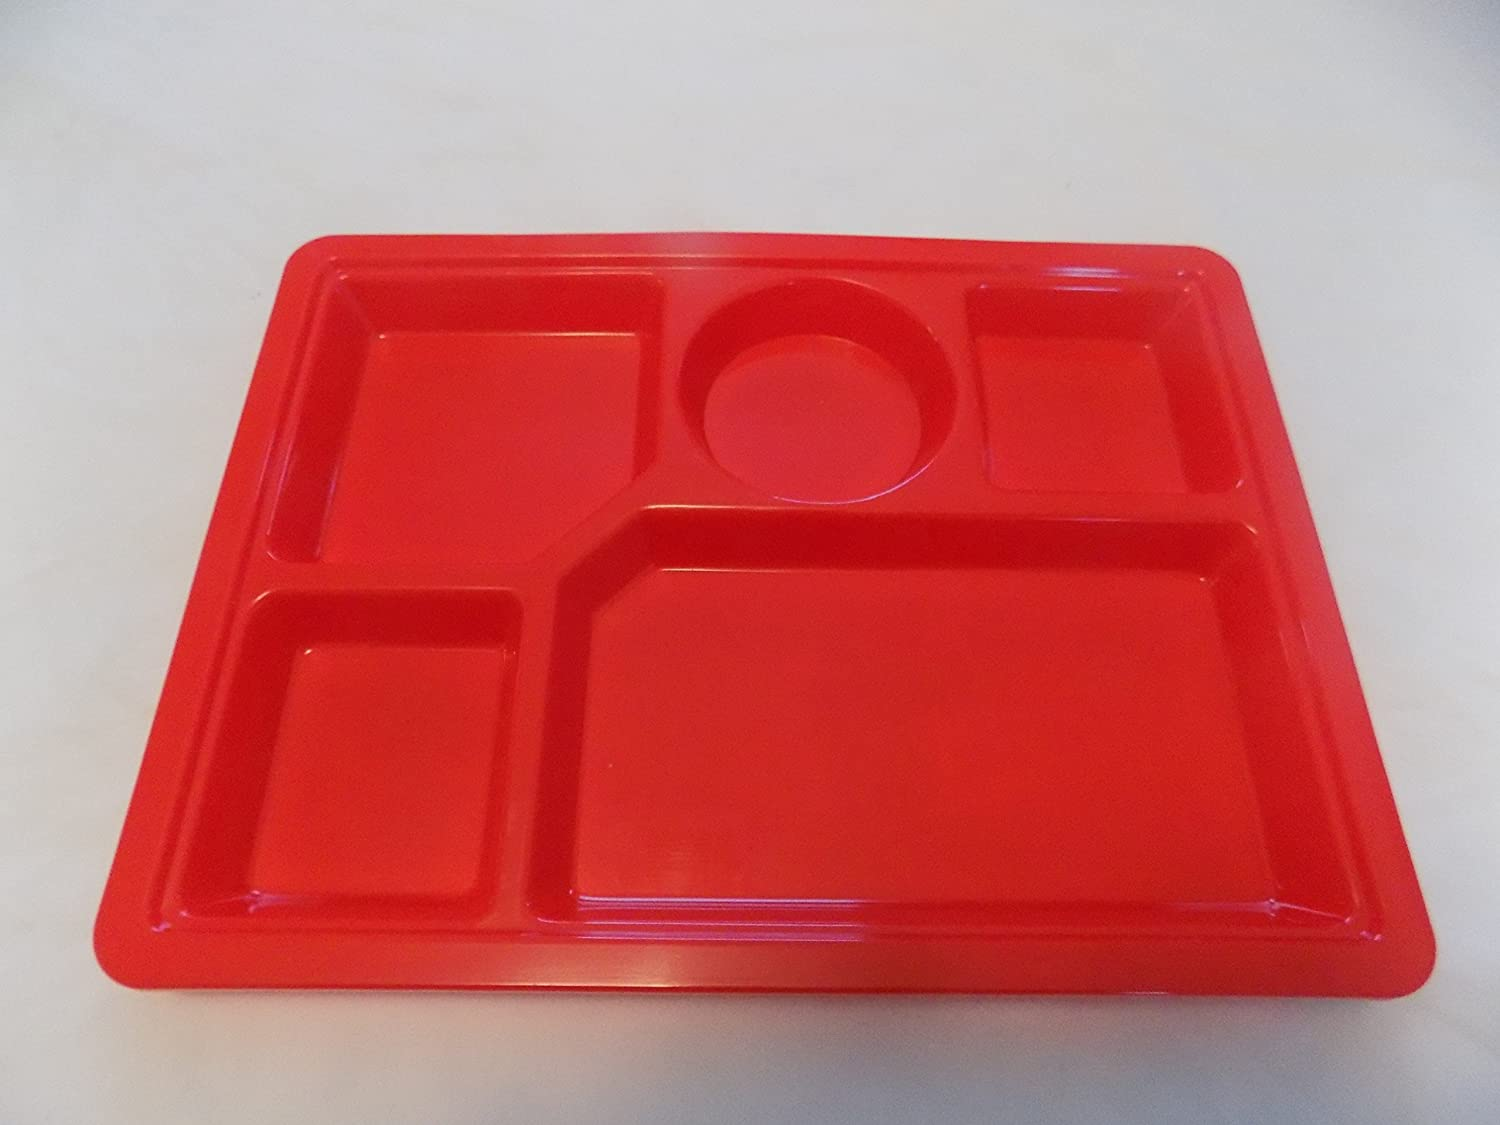 """Tray Divided TV Lunch Dinner Meal Picnic Plate Serving Plastic Orange 8.5/""""x11.5/"""""""